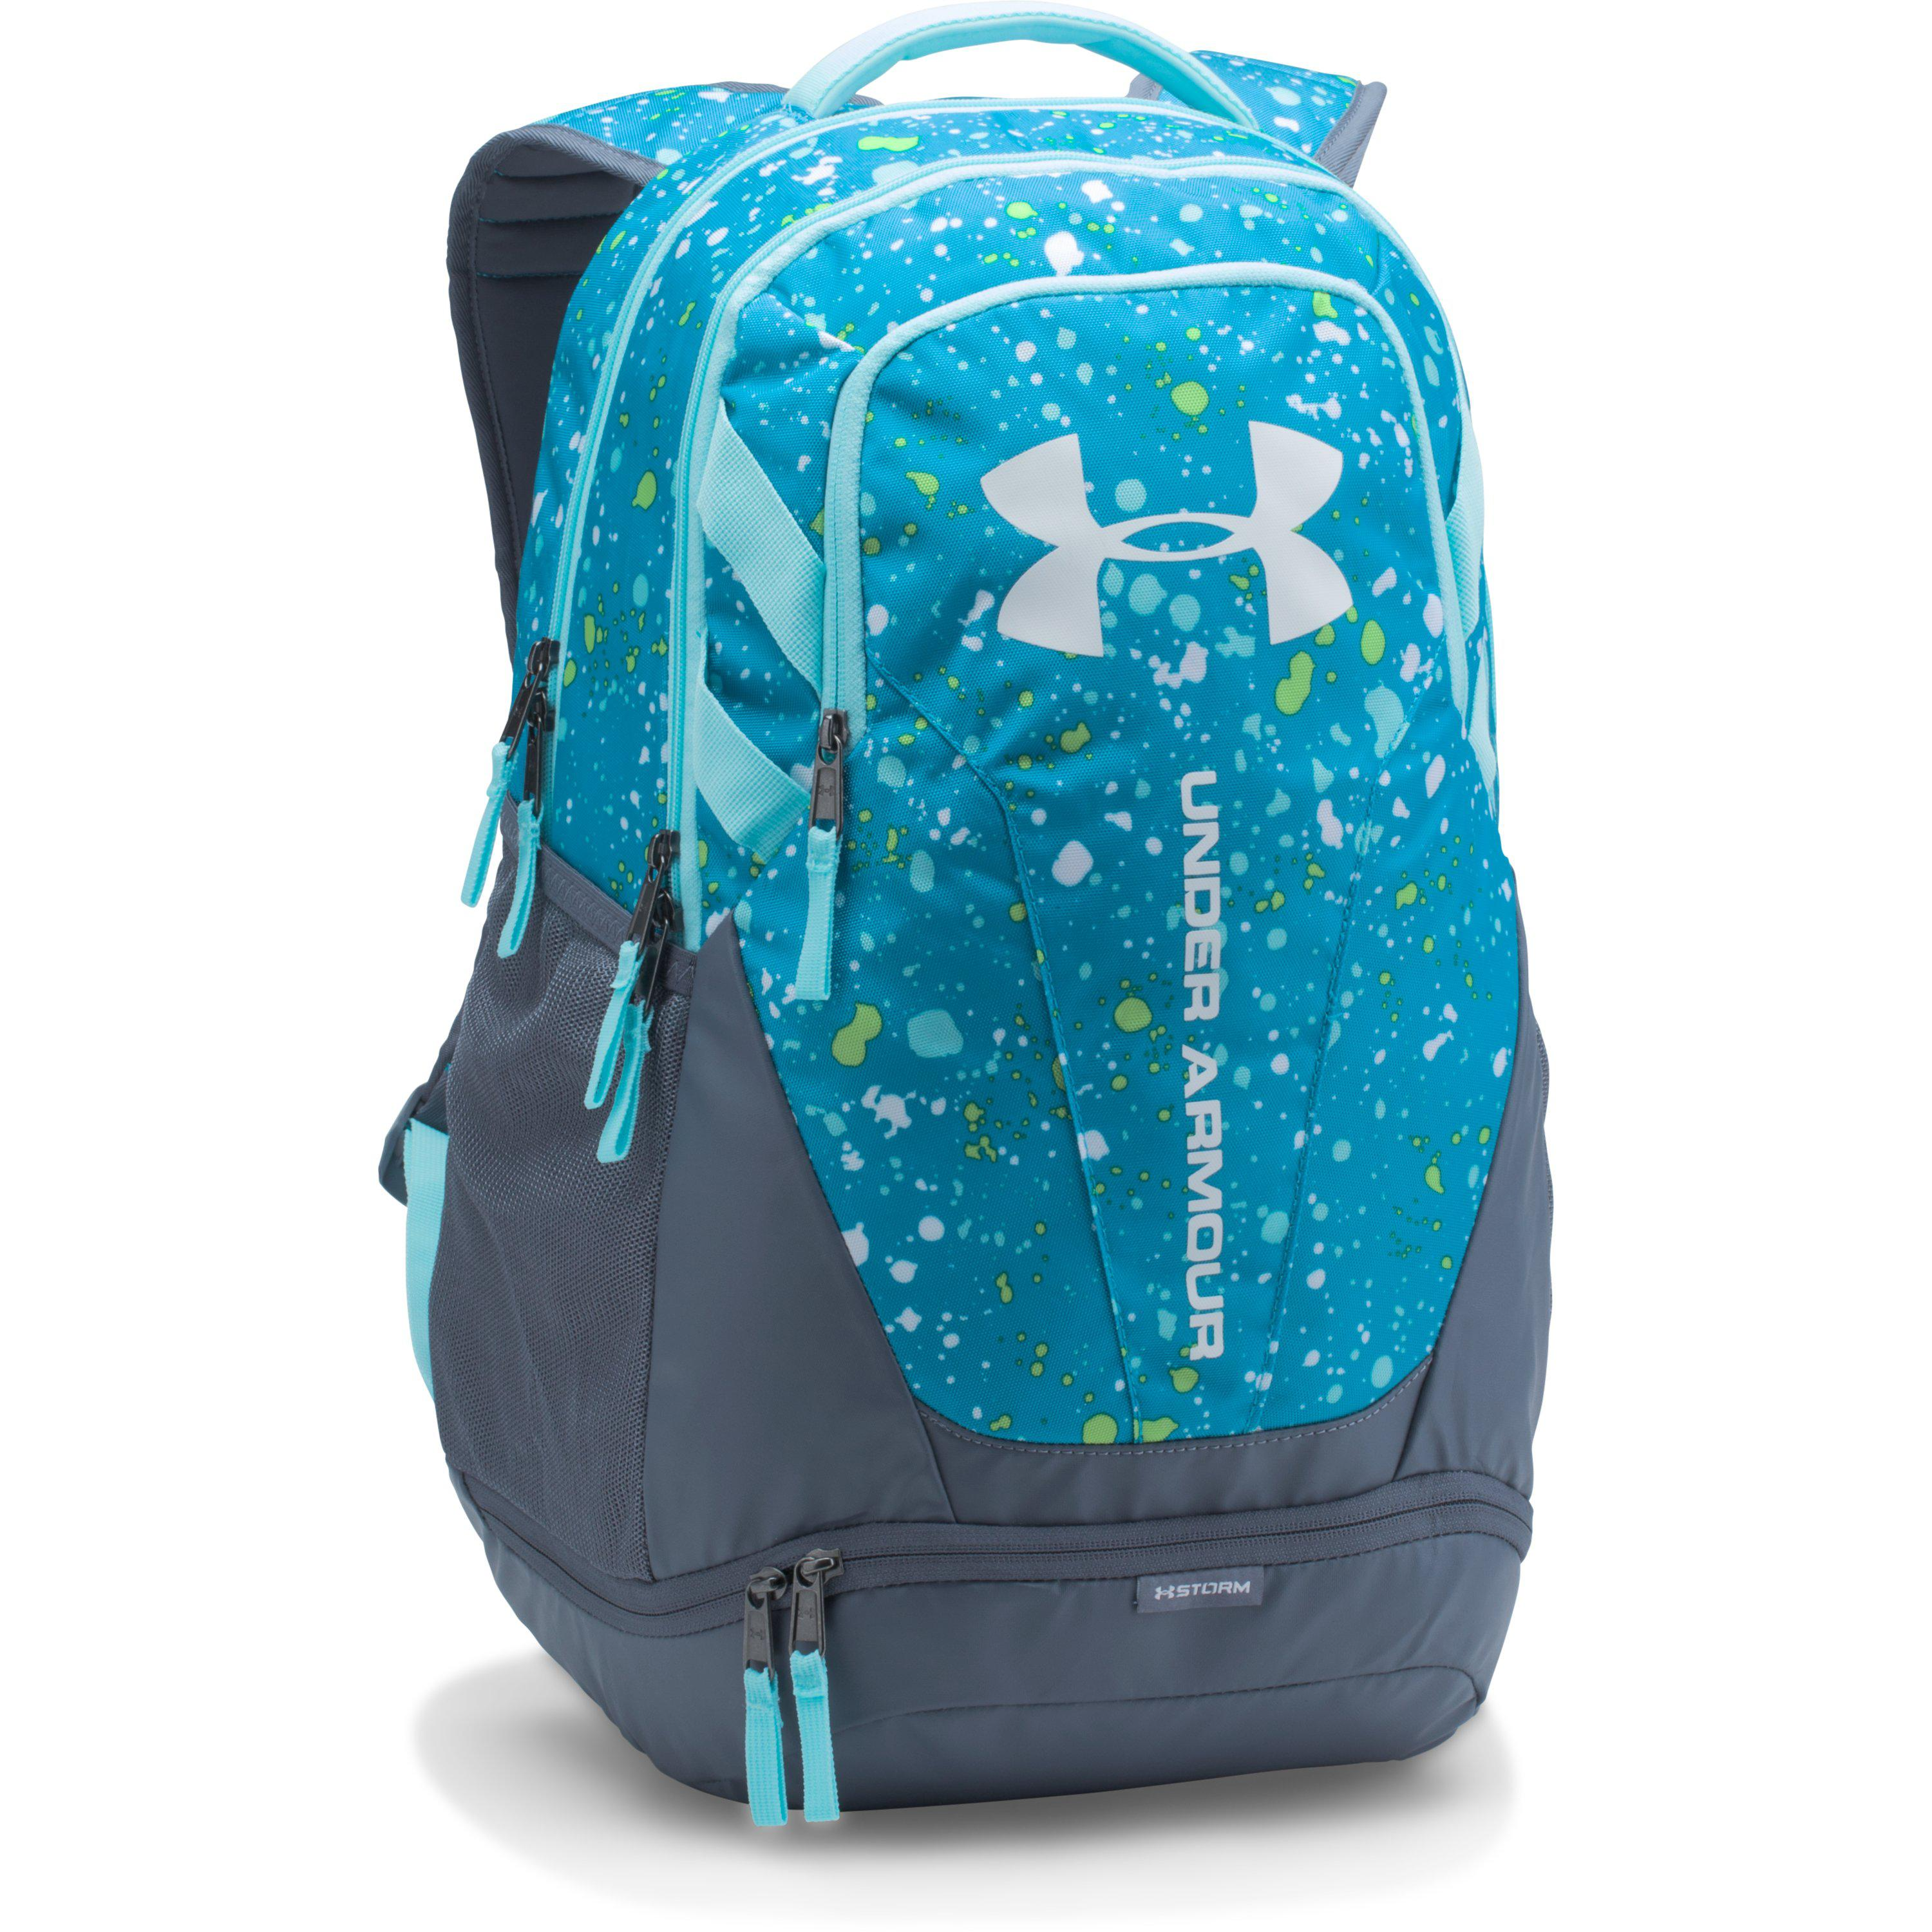 shop bag gh casual youth infinity malaysia backpacks bags school in under men sport best armour travel backpack price